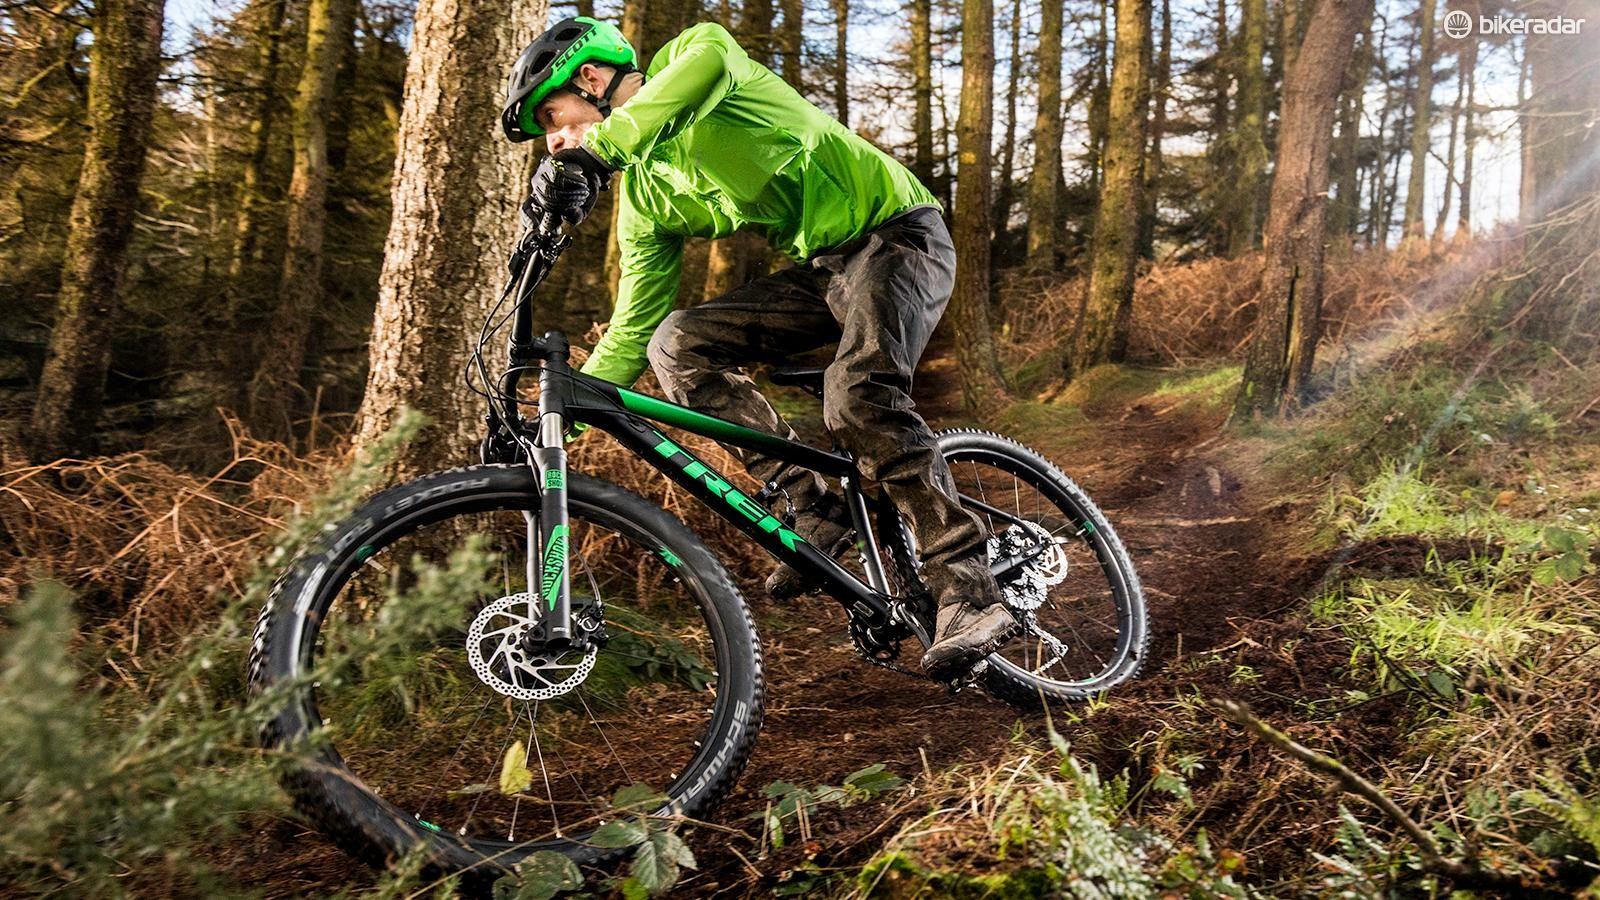 The Roscoe's plus tyres boost grip and comfort, and make it a real giggle on intermediate trails